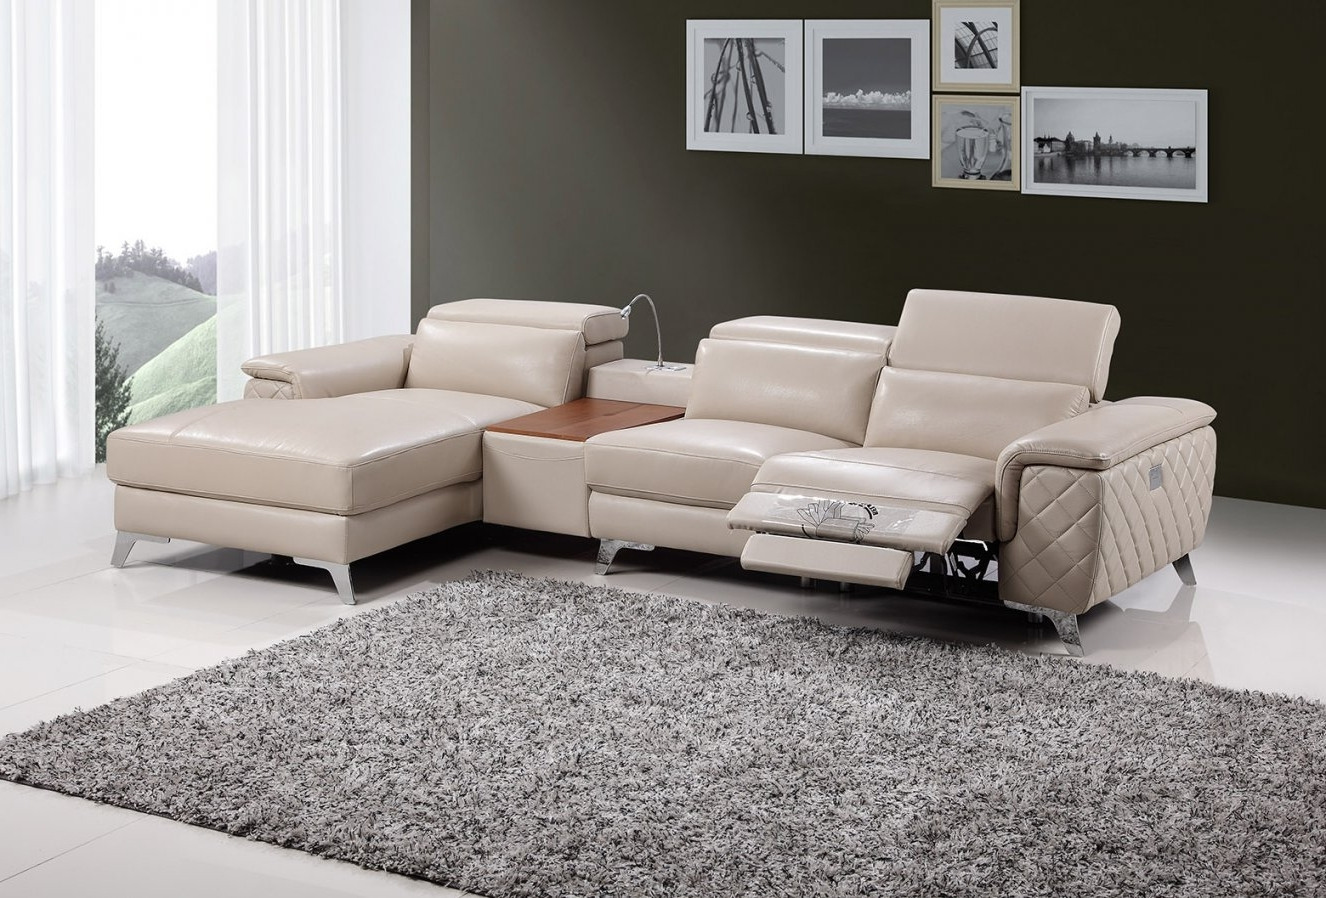 Preferred Chaise Lounge Sofa With Recliner Pertaining To Reclining Chaise Lounges (View 9 of 15)